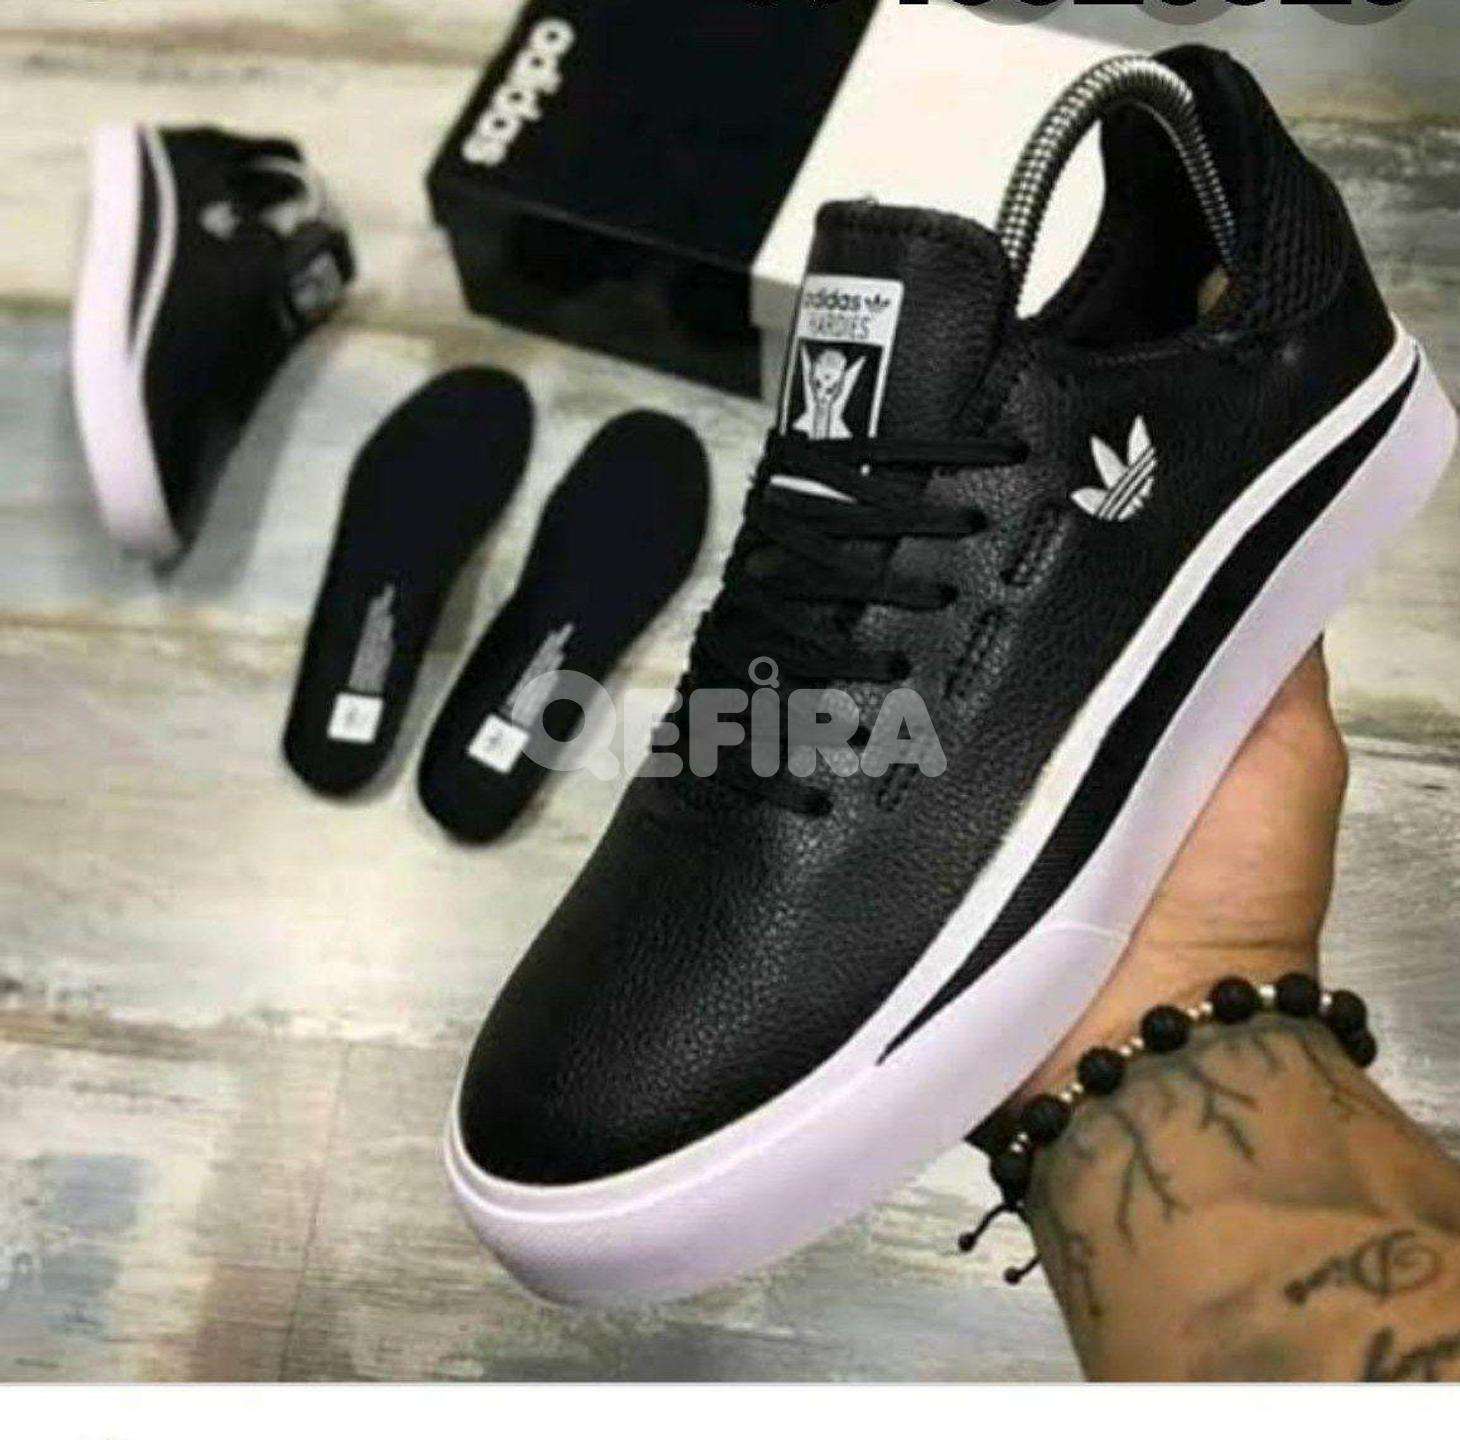 Adidas Shoes in Addis Ababa | Qefira